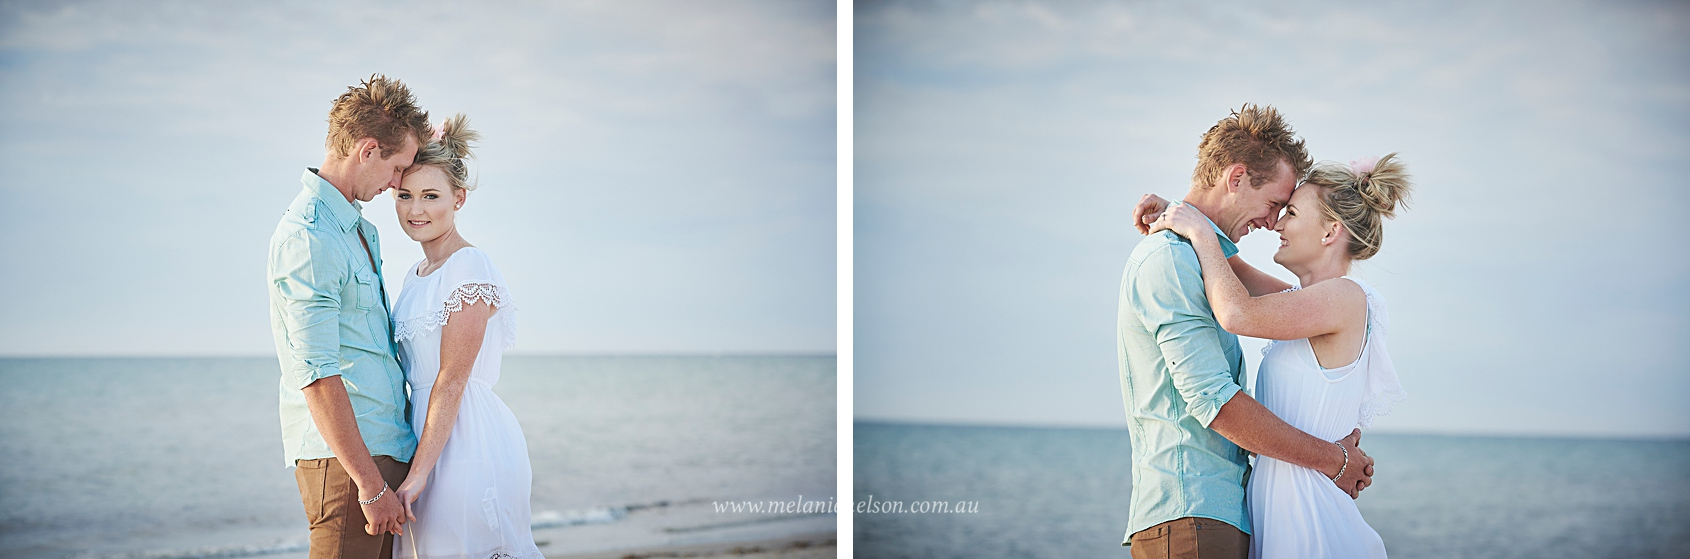 beach_engagement_photography_adelaide_0016.jpg